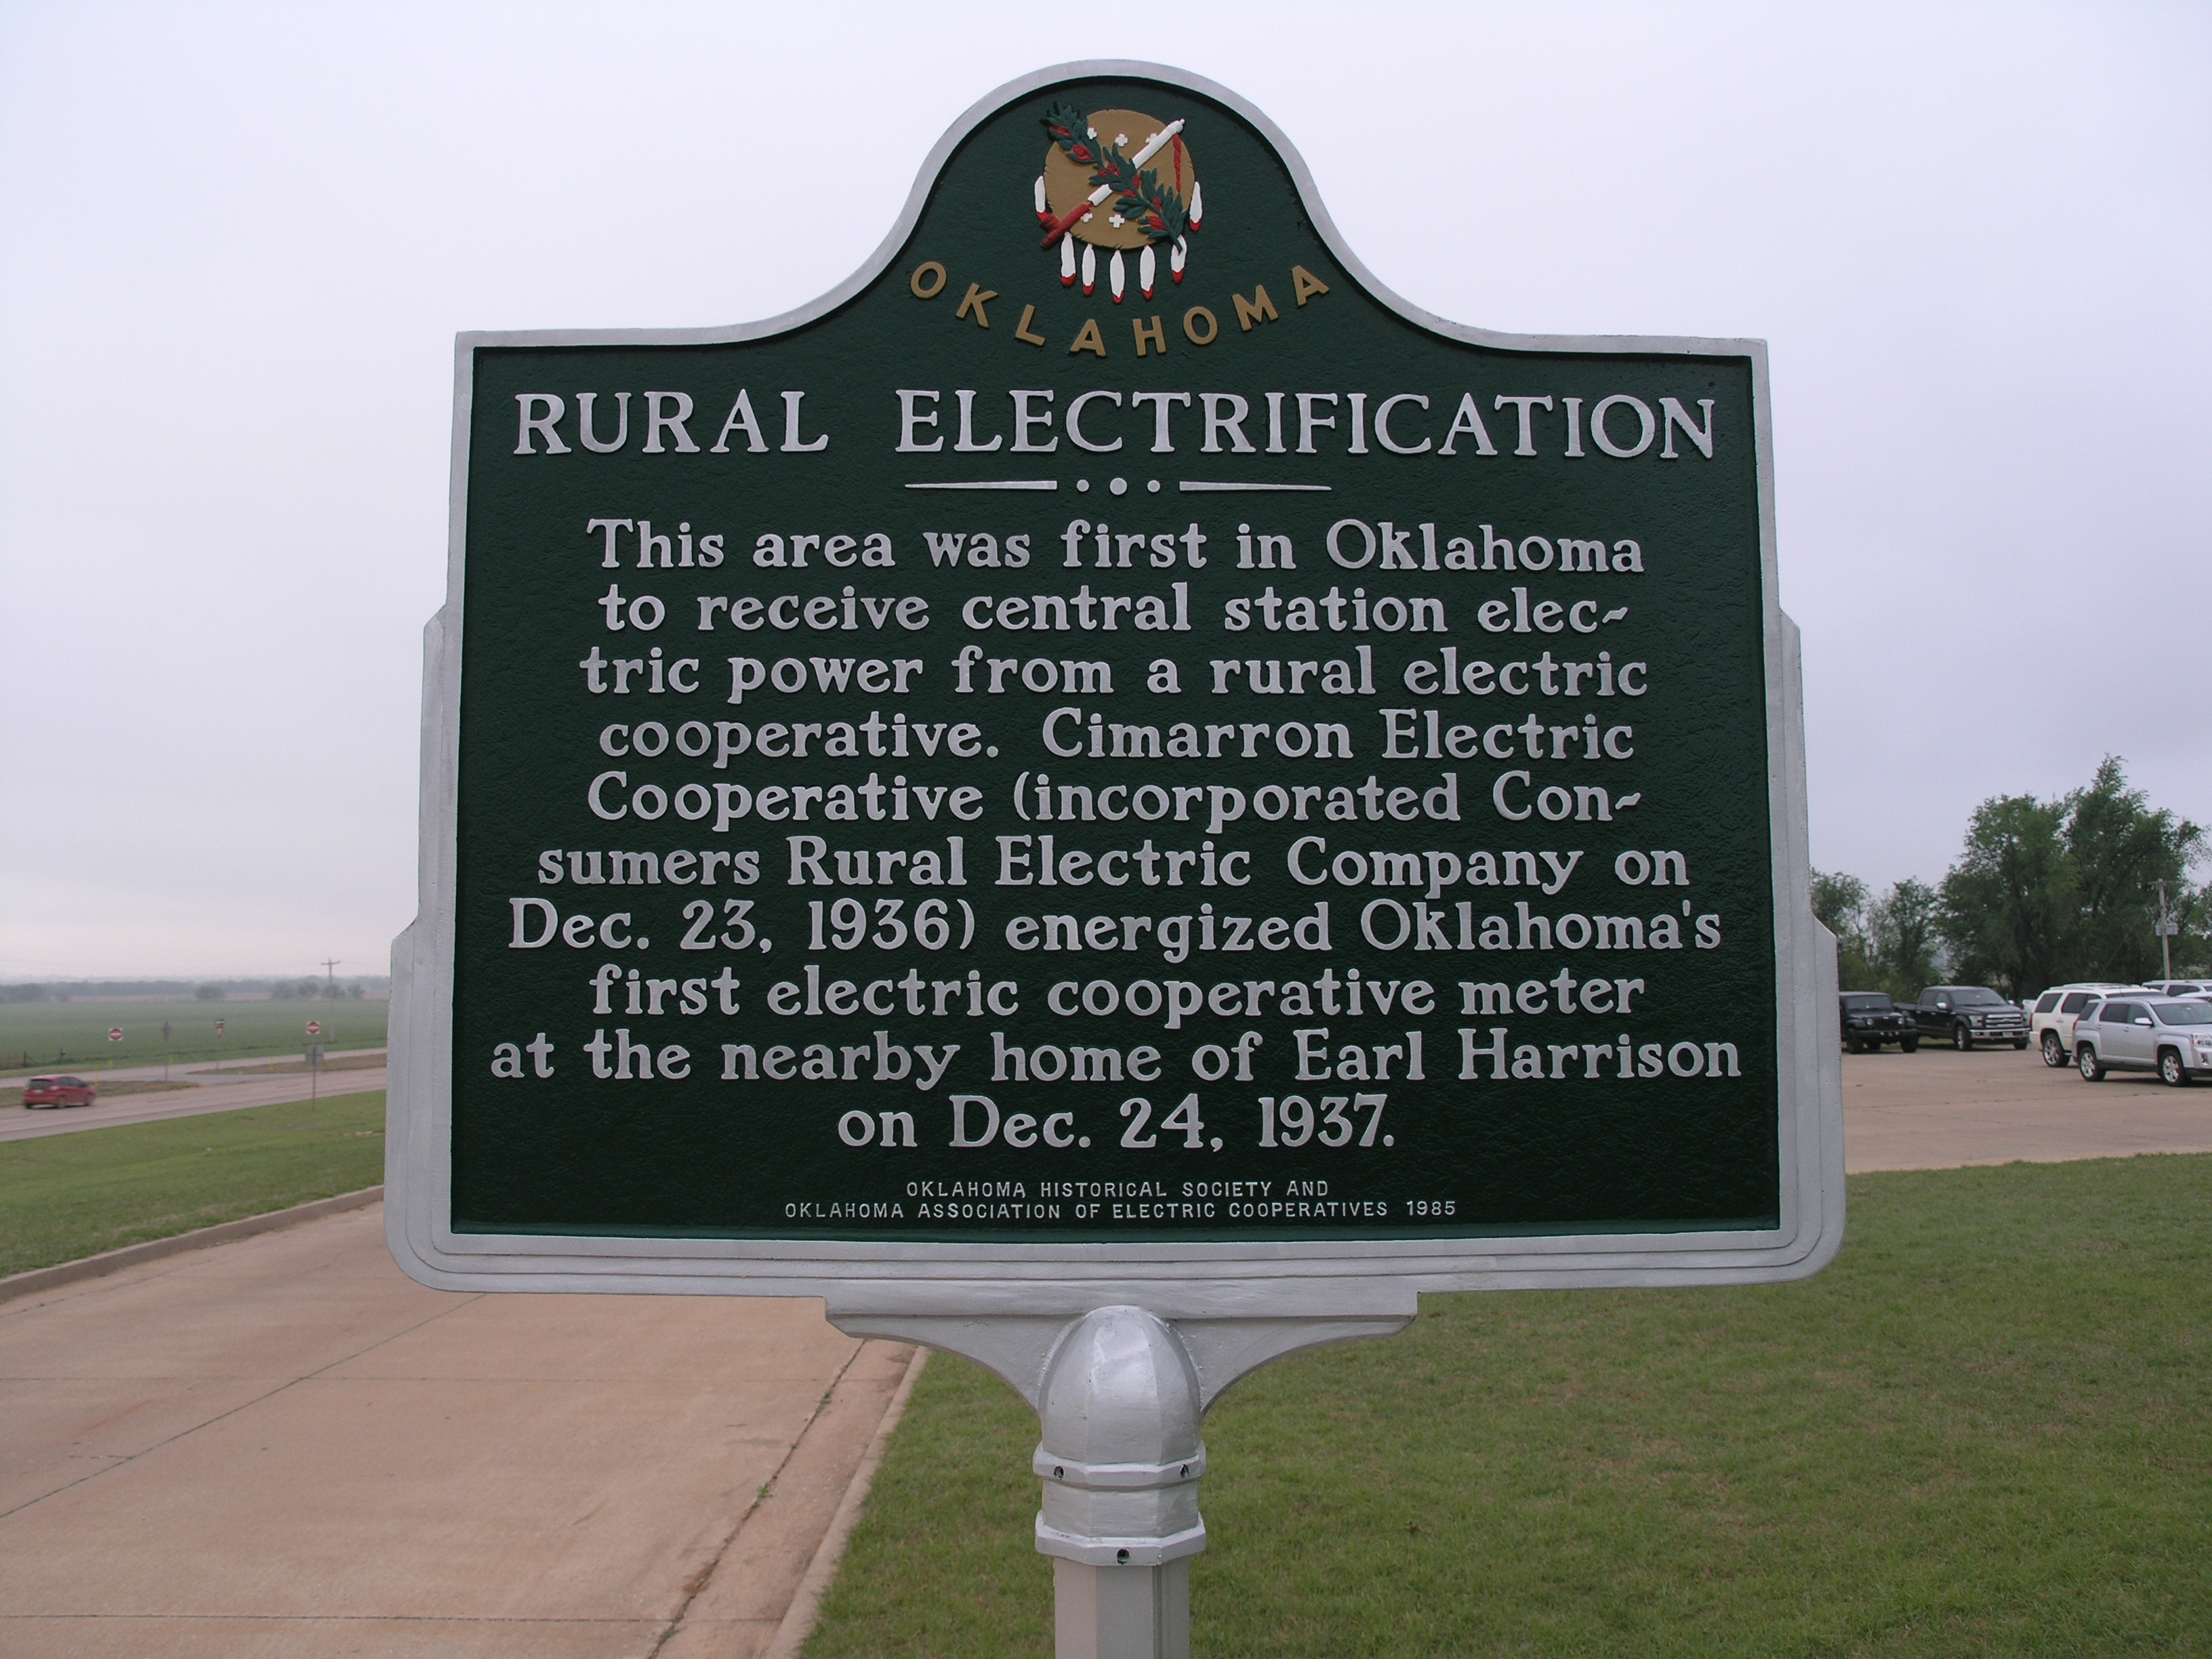 Exploring Oklahoma History: Rural Electrification